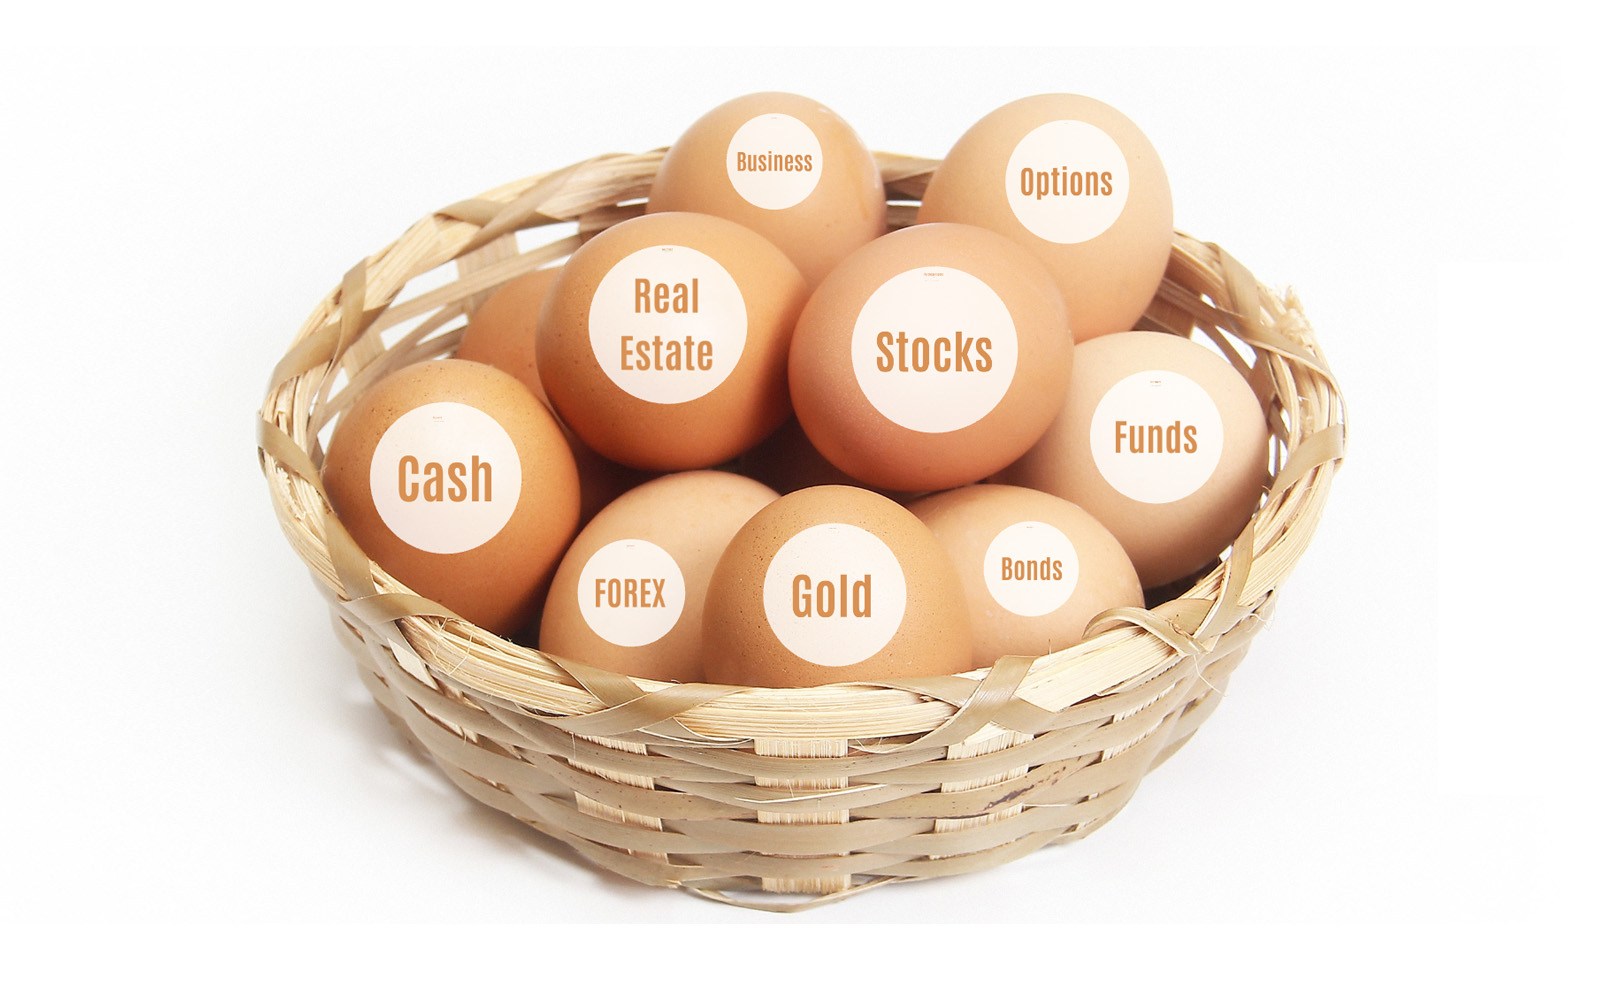 Investing Prezi template eggs in one basket rule